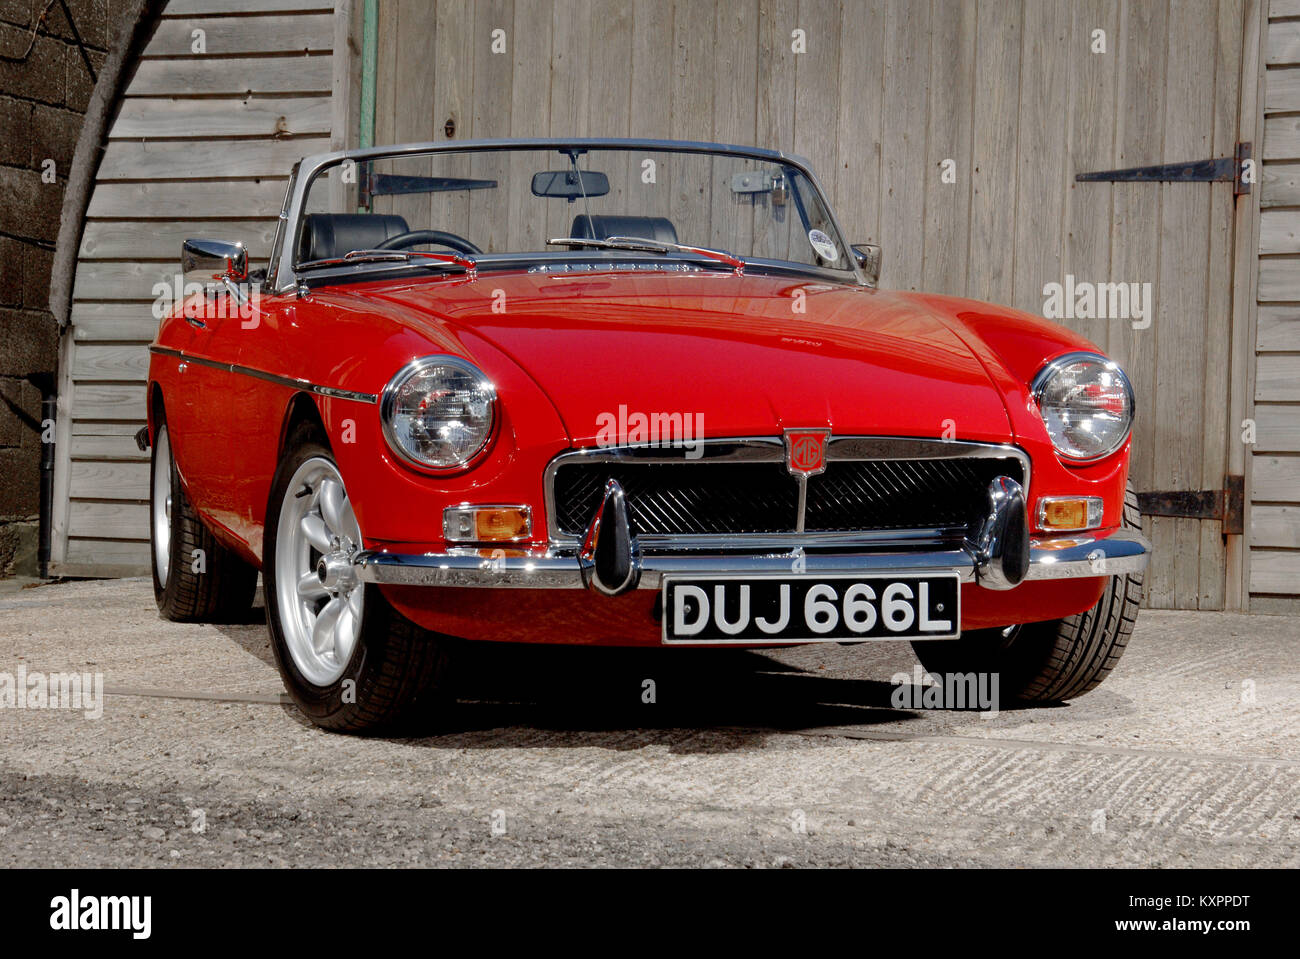 Mgb 1960s Stock Photos & Mgb 1960s Stock Images - Alamy  Mgb 1960s Stock...